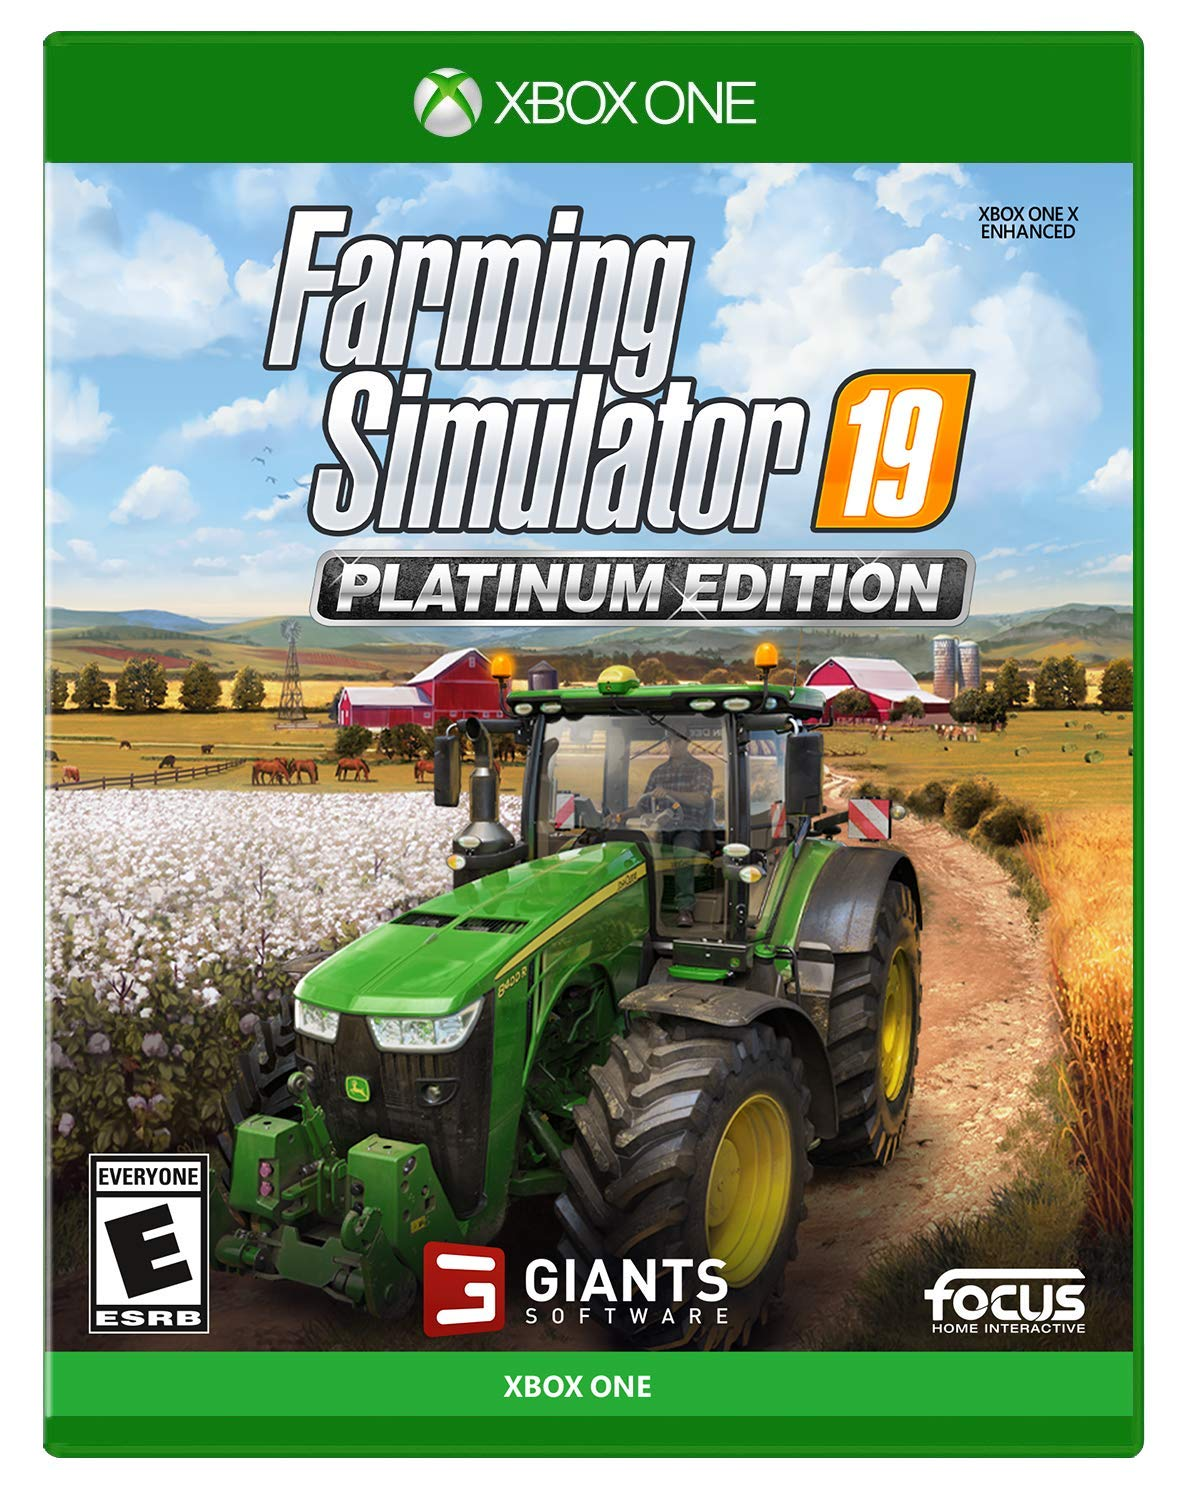 Farming Simulator 19 Platinum Edition (Xb1) - Xbox One